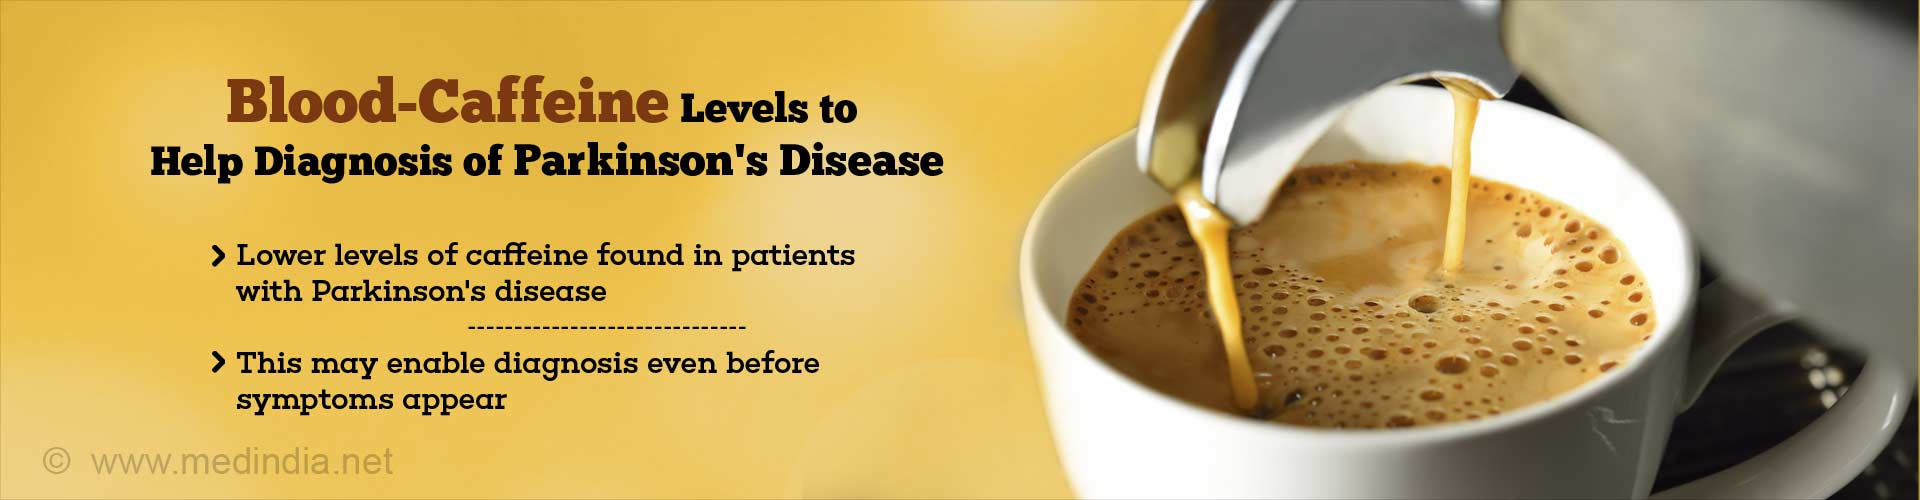 Blood-caffeine levels to help diagnosis of Parkinson's Disease